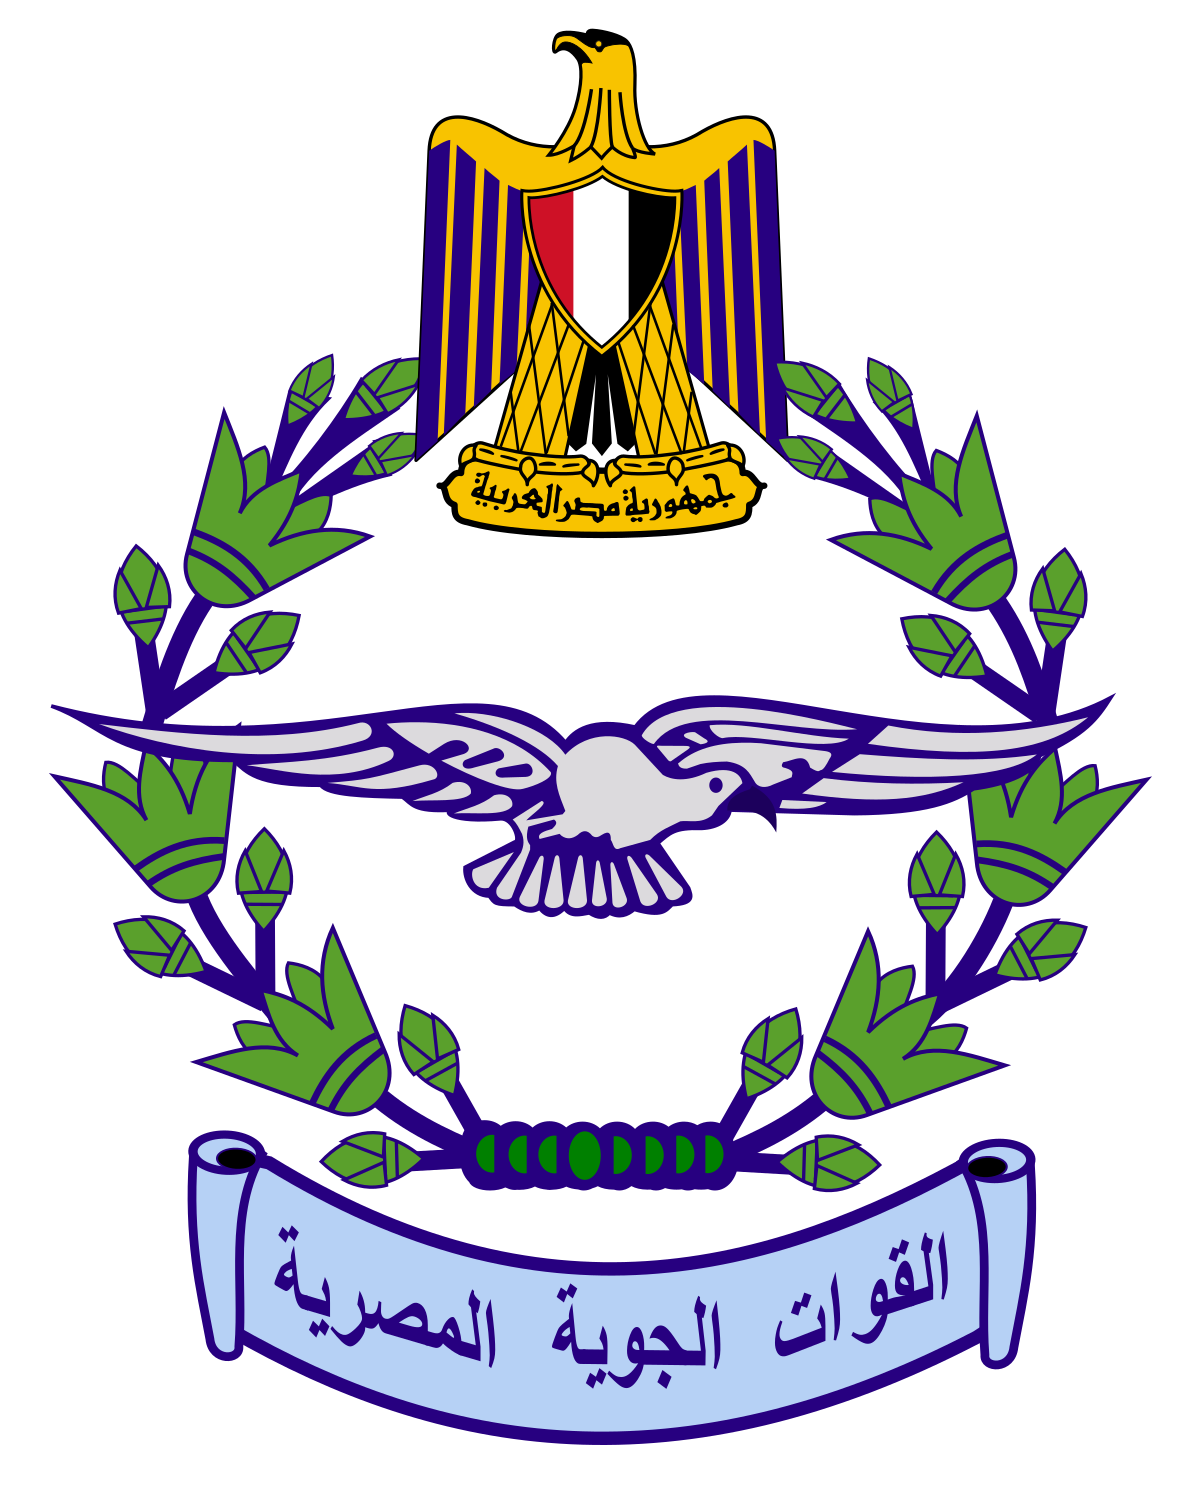 Egyptian air force wikipedia. Missions clipart coptic